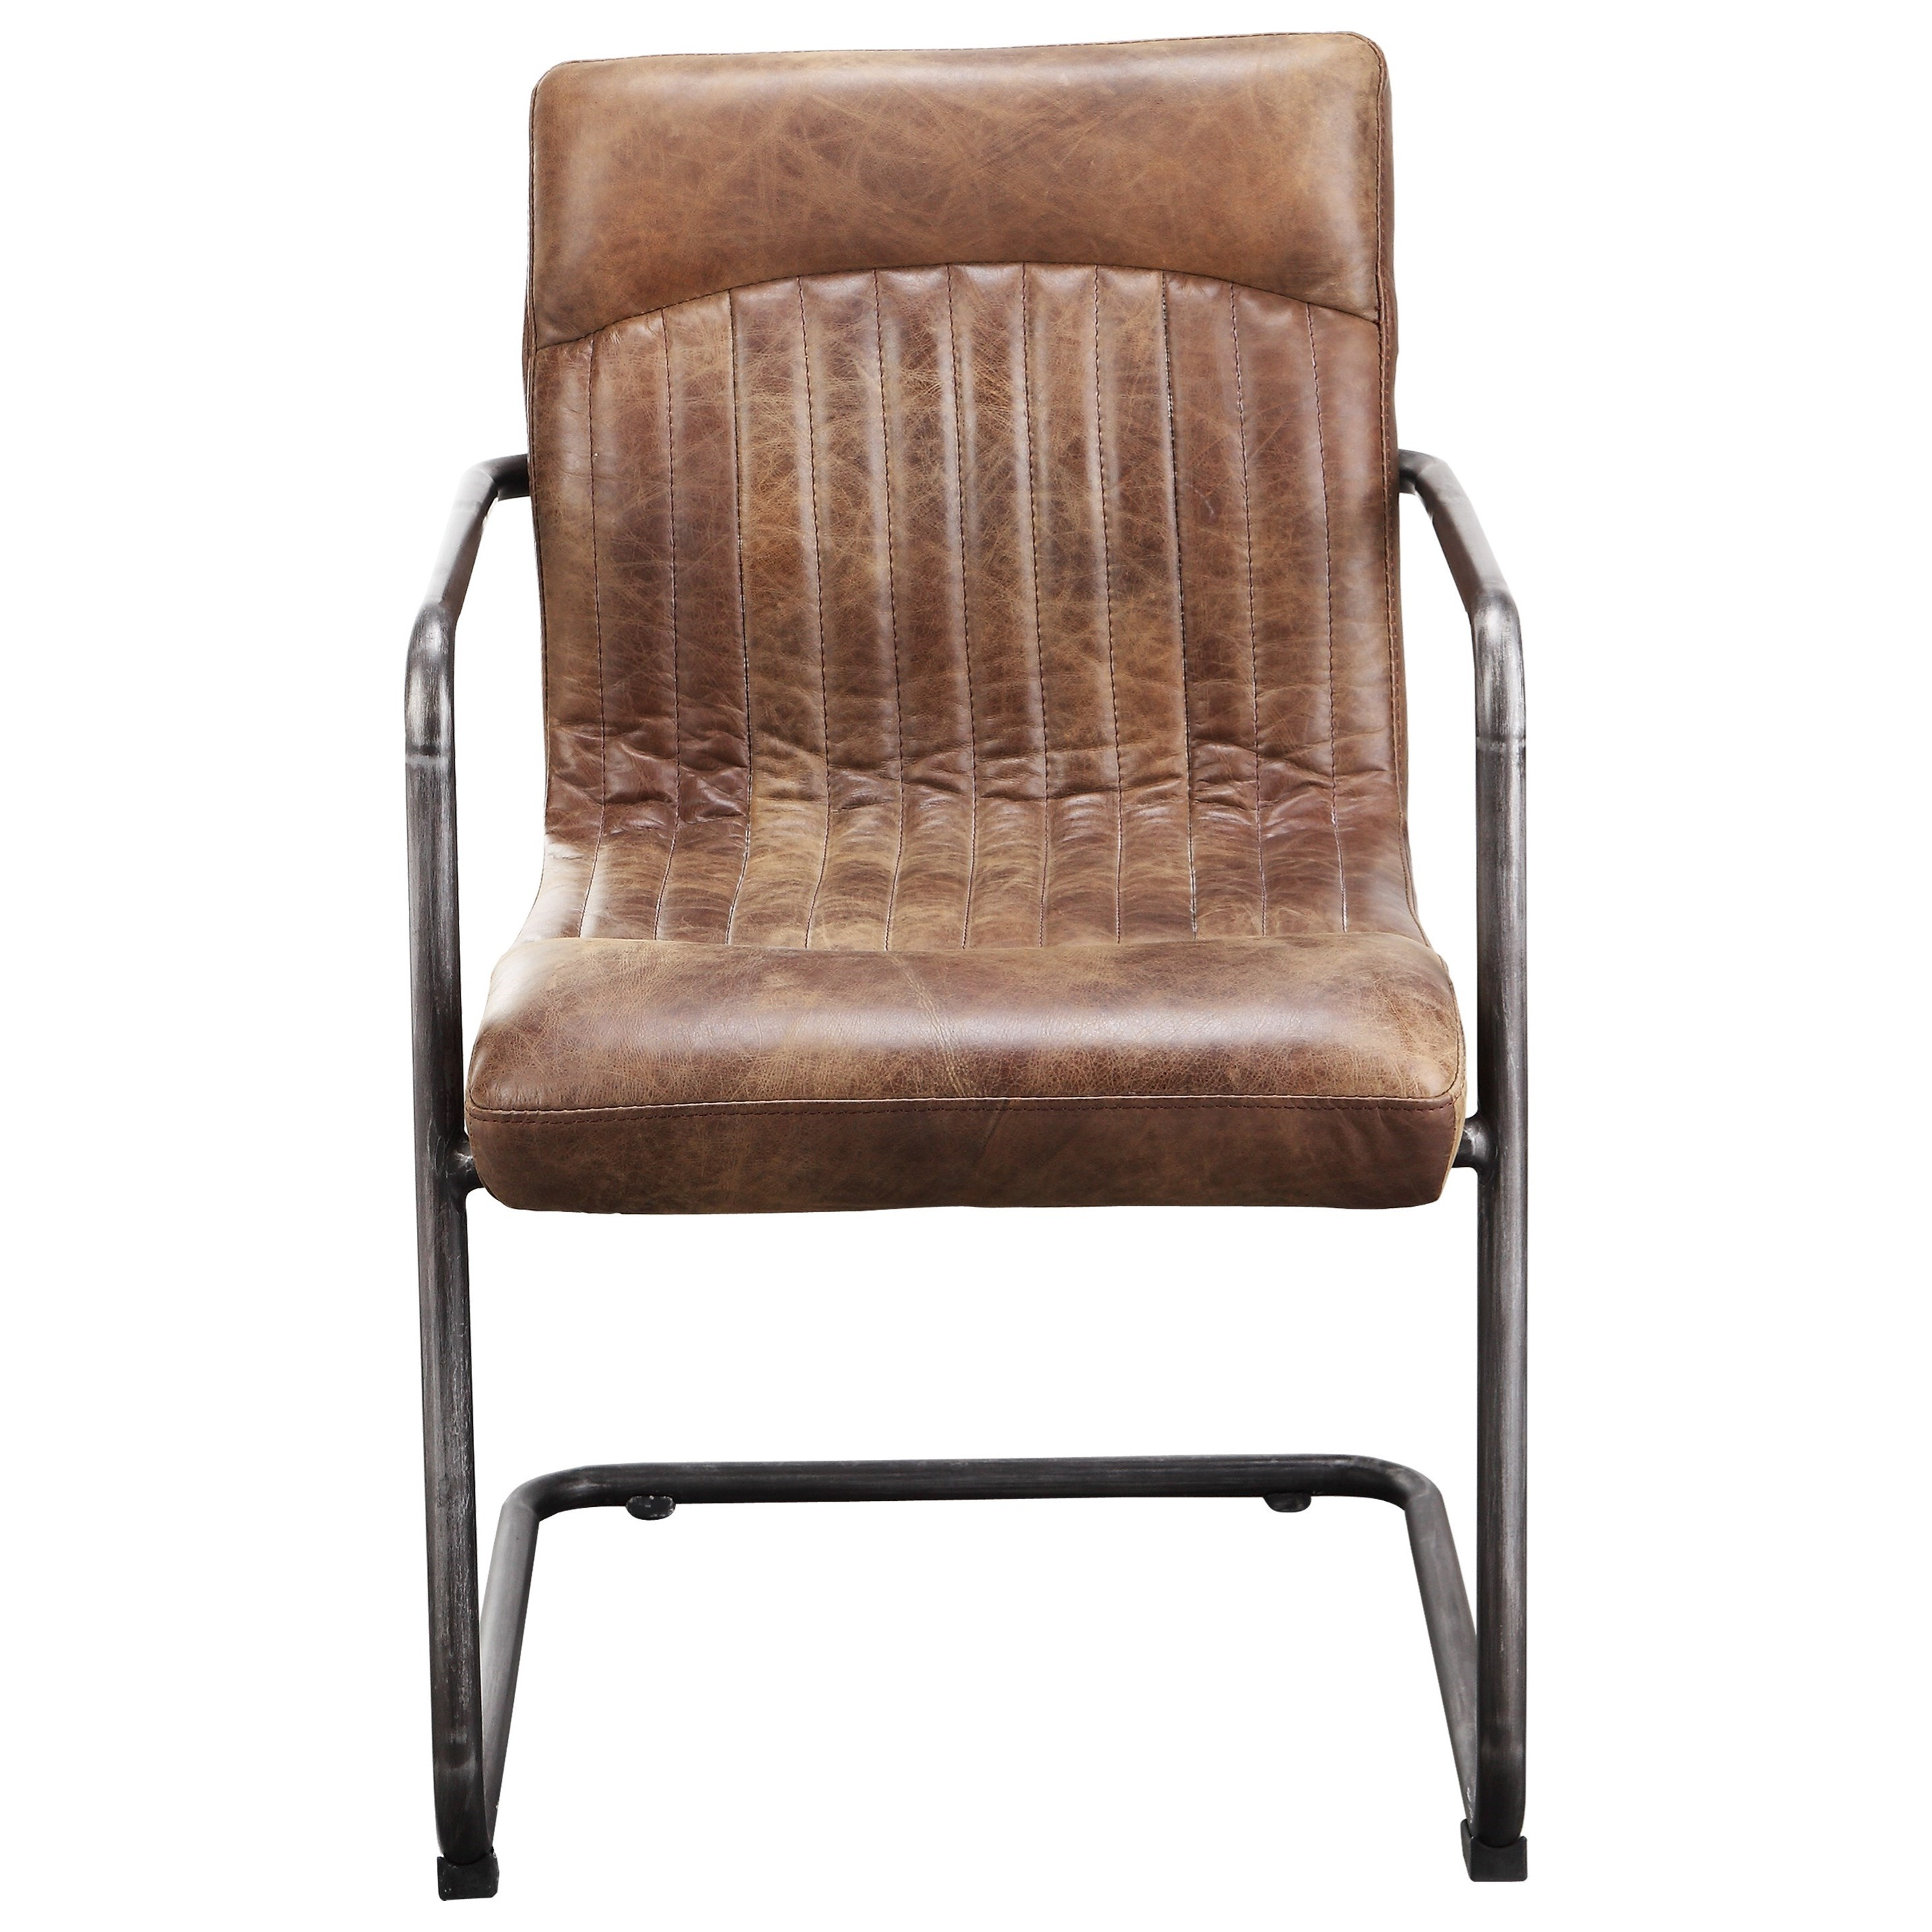 Arm Chair - Light Brown